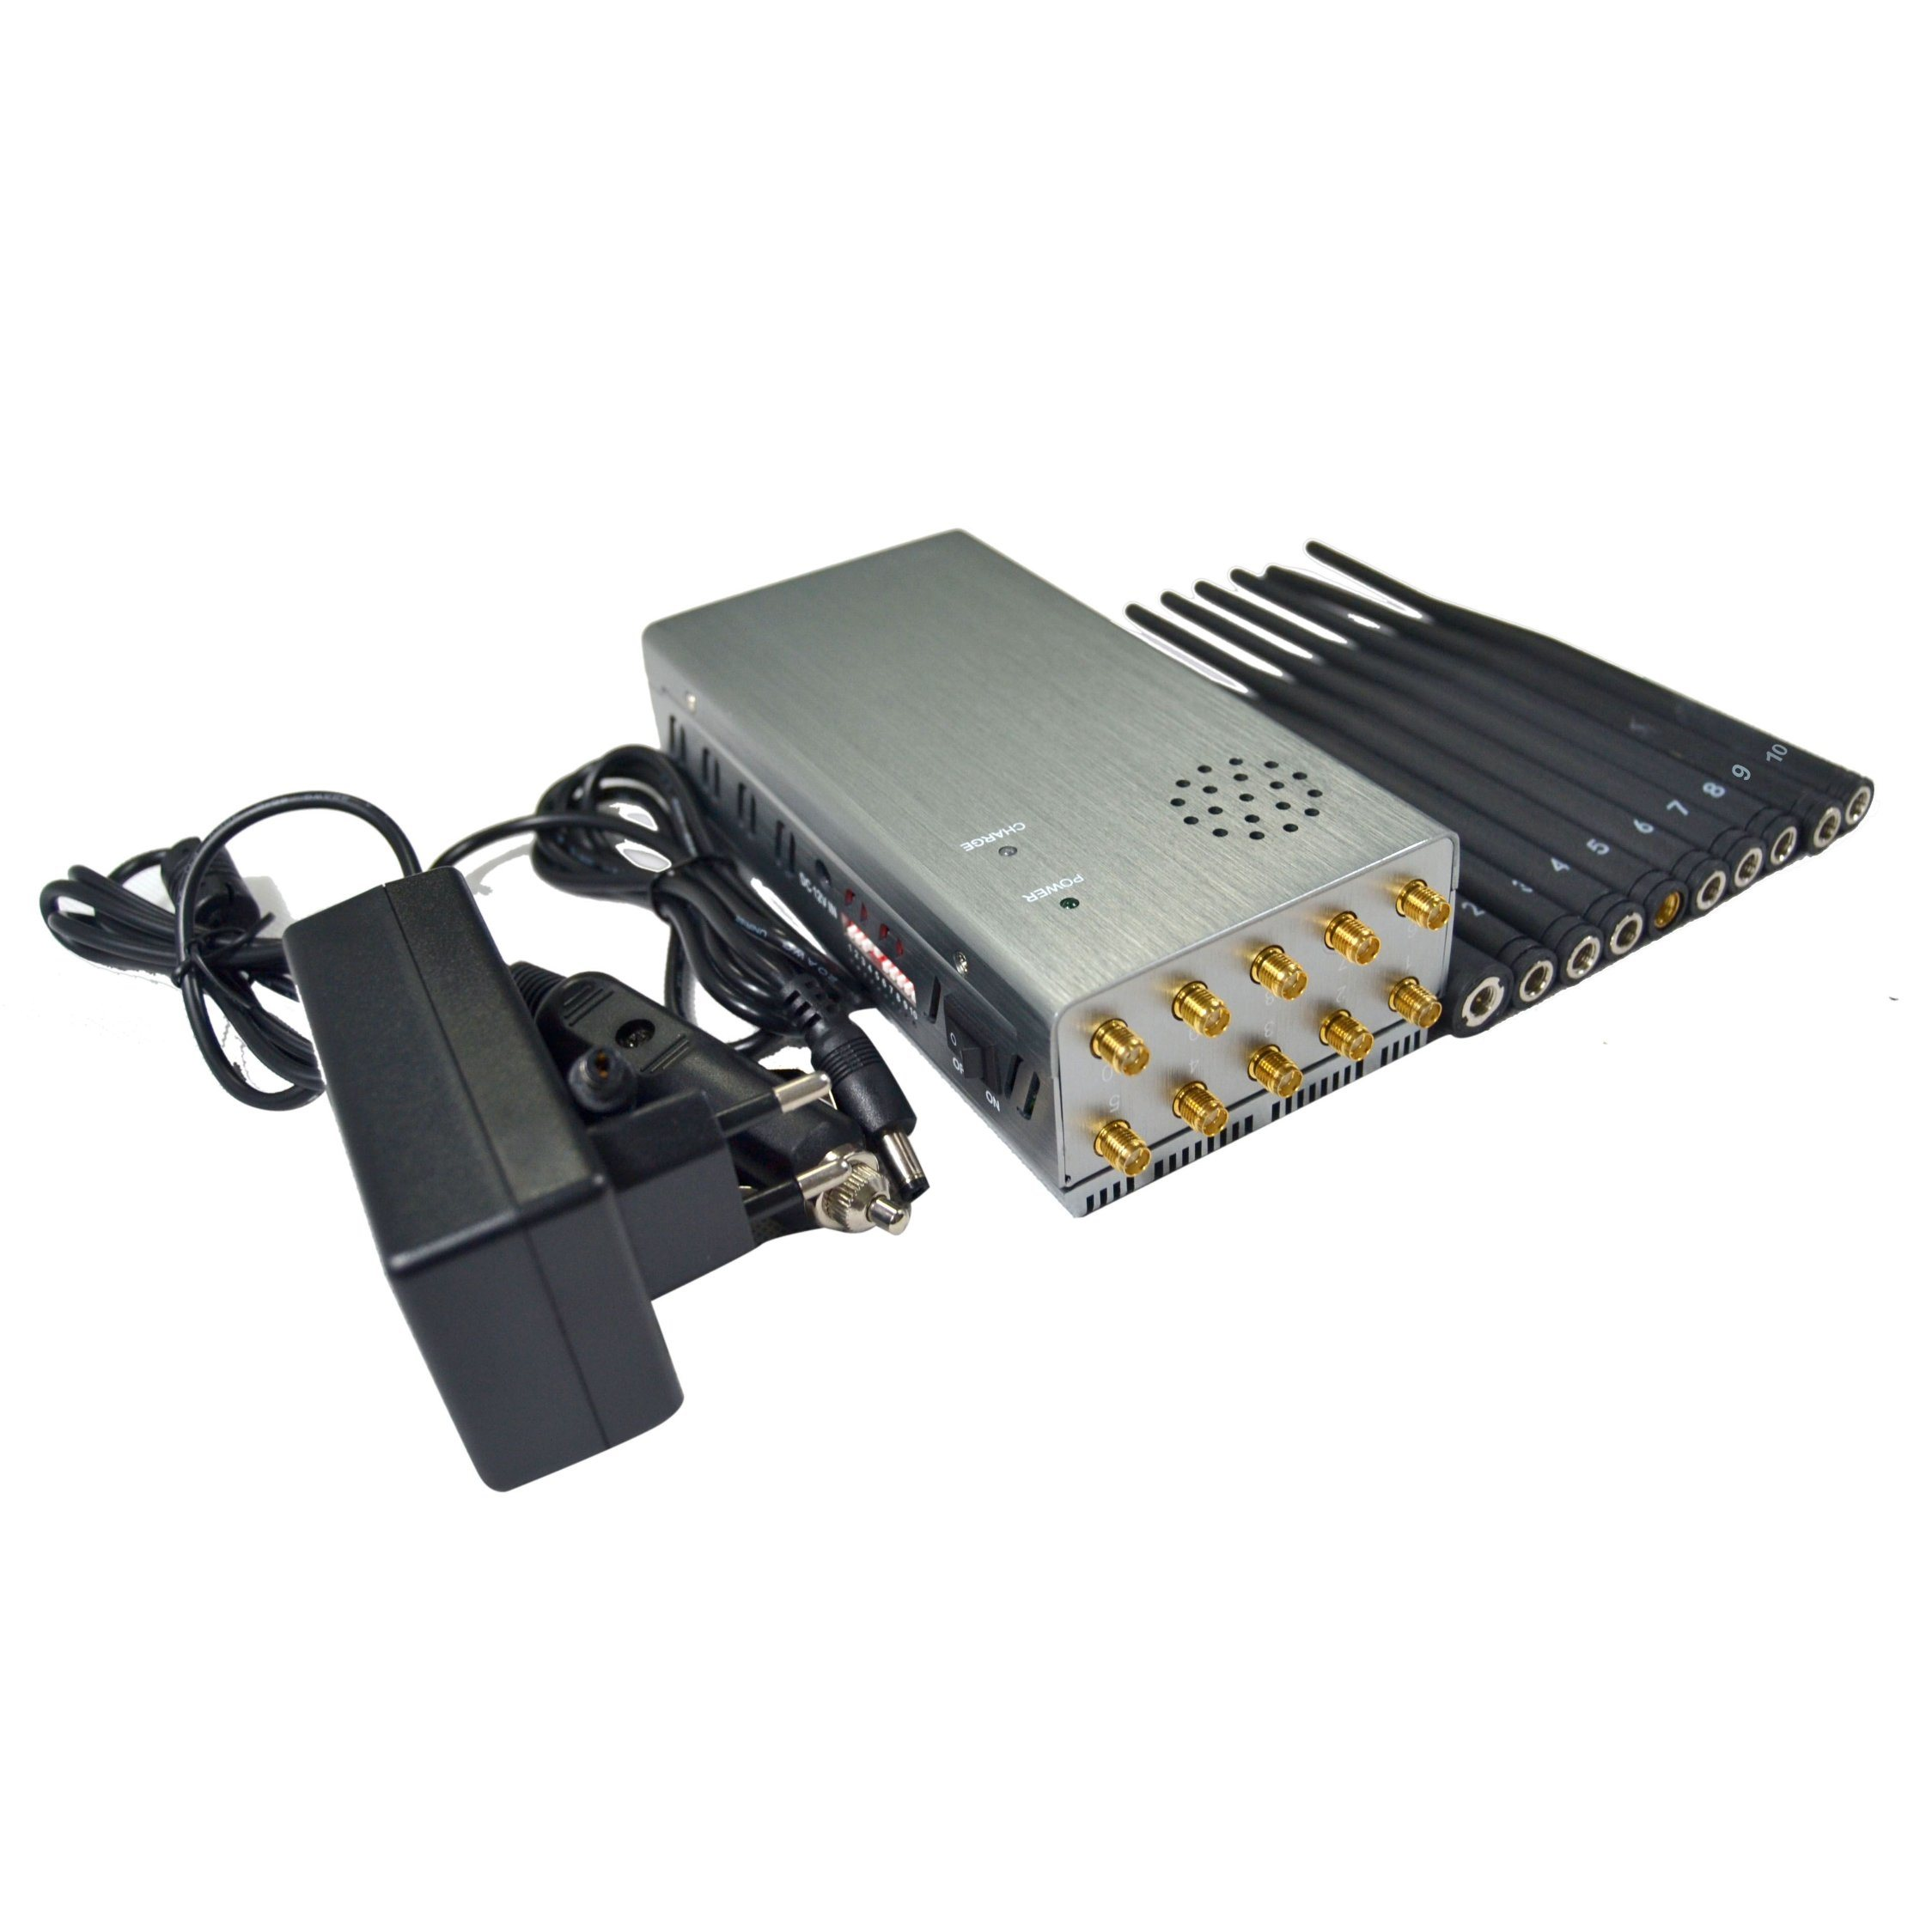 jamming signal radar ohio - China The King of Portable Jammers with 8000mA and 10 Antennas Including 2g 3G 4G 5g GPS 433MHz315MHz868MHz WiFi - China 8000mA Battery Jammer, Large Volume Power Signal Blocker